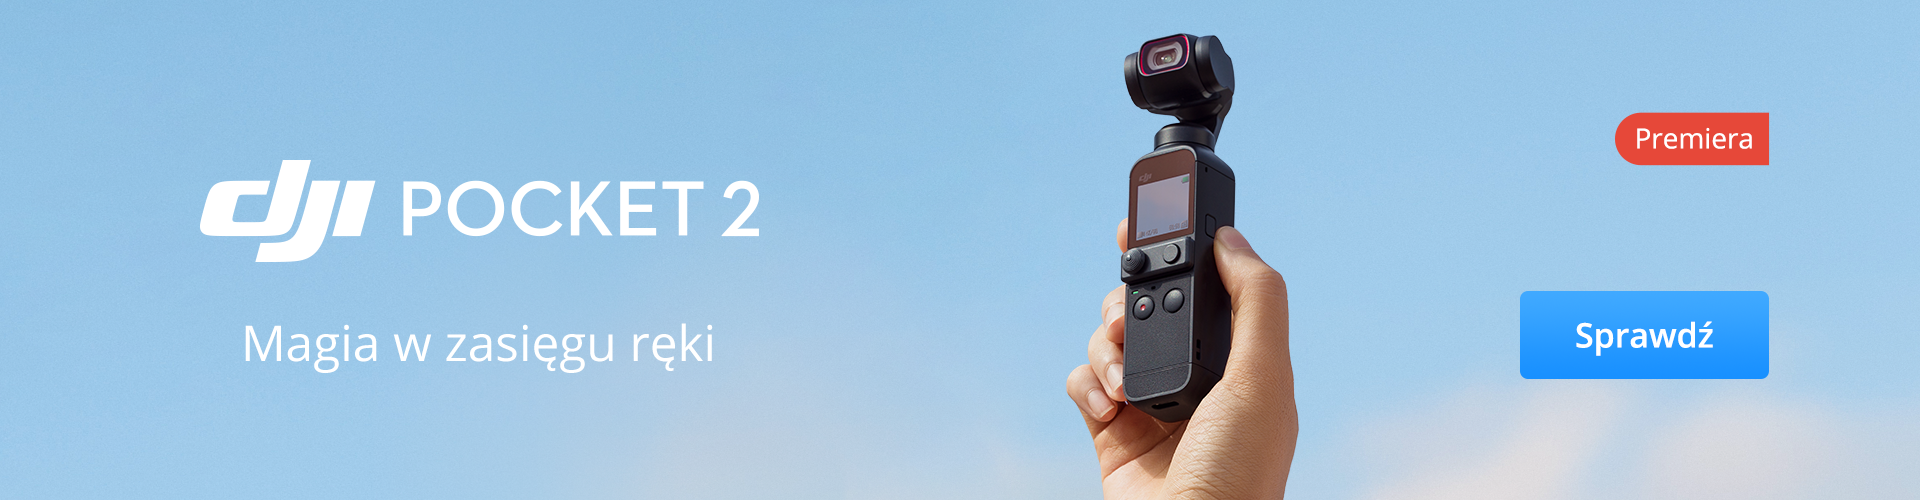 https://mdron.pl/6210,dji-pocket-2-osmo-pocket-2-.html